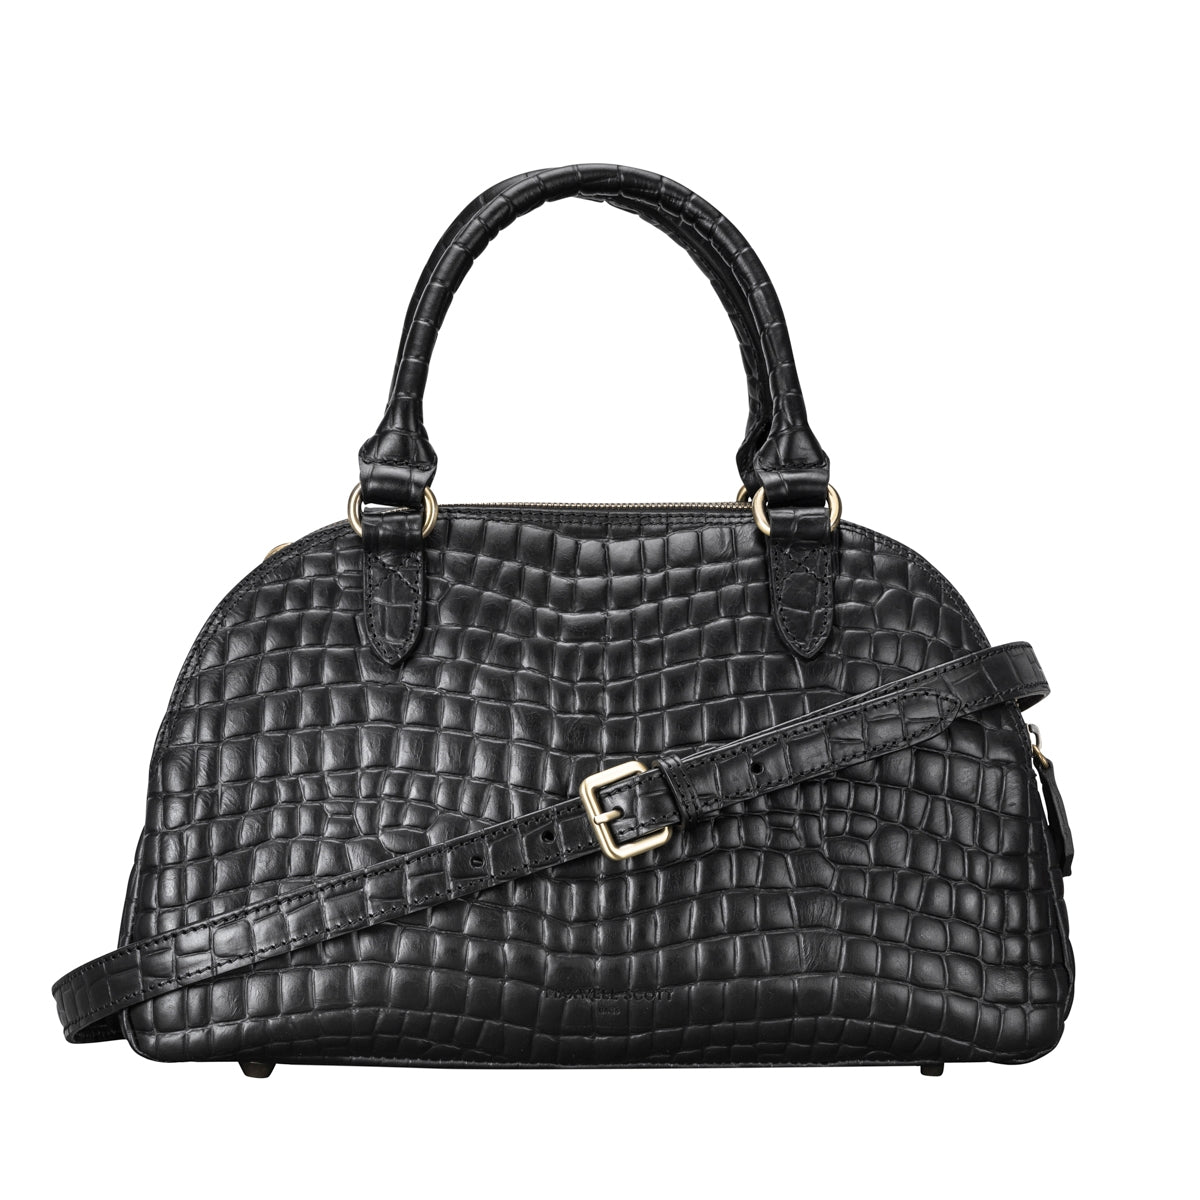 Image 4 of the 'LilianaS' Mock Croc Leather Ladies Bowling Bag